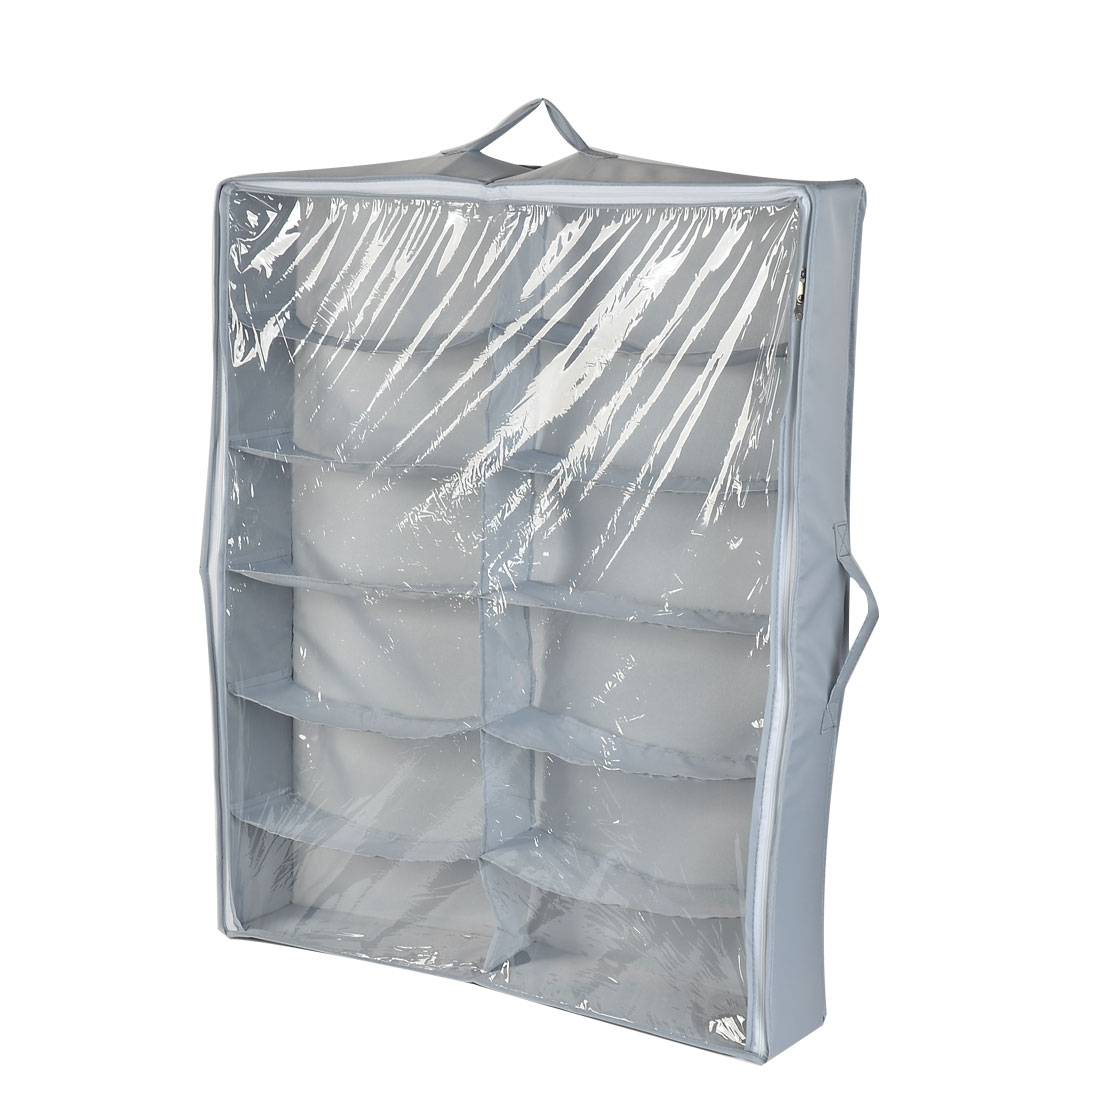 Household 12 Compartments Shoes Storage Box Bag Packing Case Gray